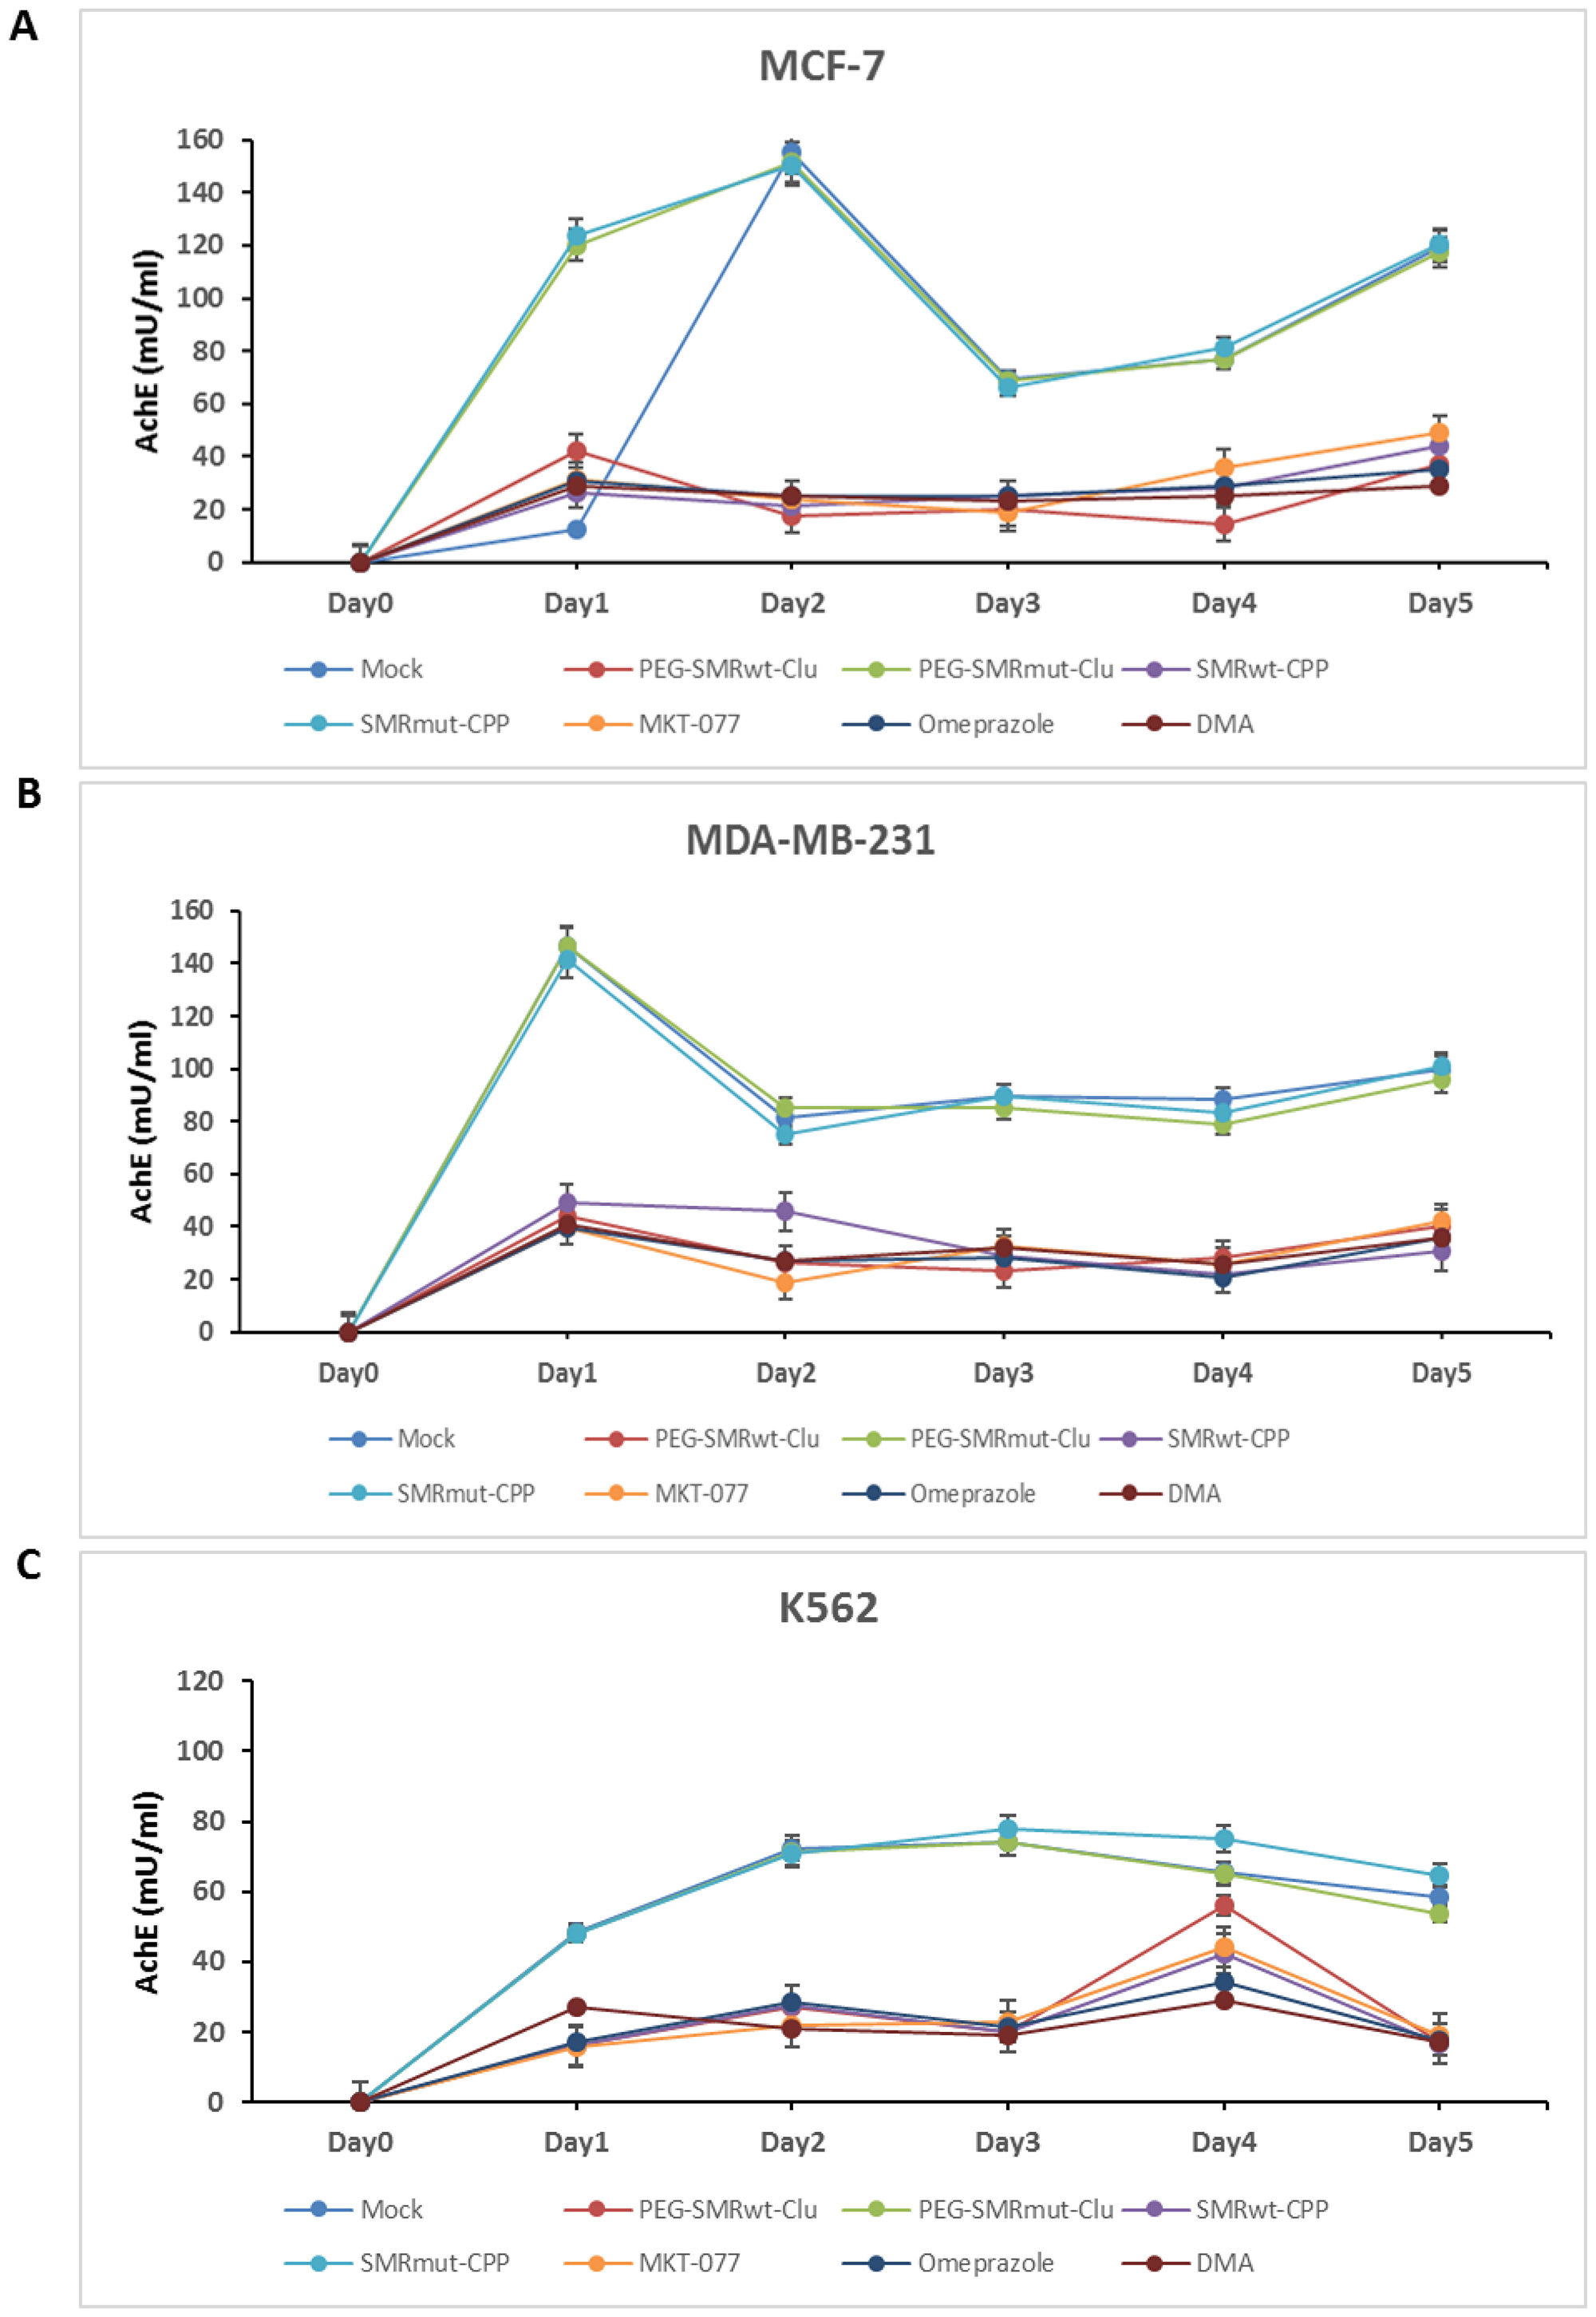 PEG-SMRwt-Clu peptide, SMRwt-CPP peptide, MKT-077, omeprazole and DMA antagonist reduced extracellular vesicle (EV) release from MCF-7, MDA-MB-231 breast cancer cells and K562 leukemia cells.